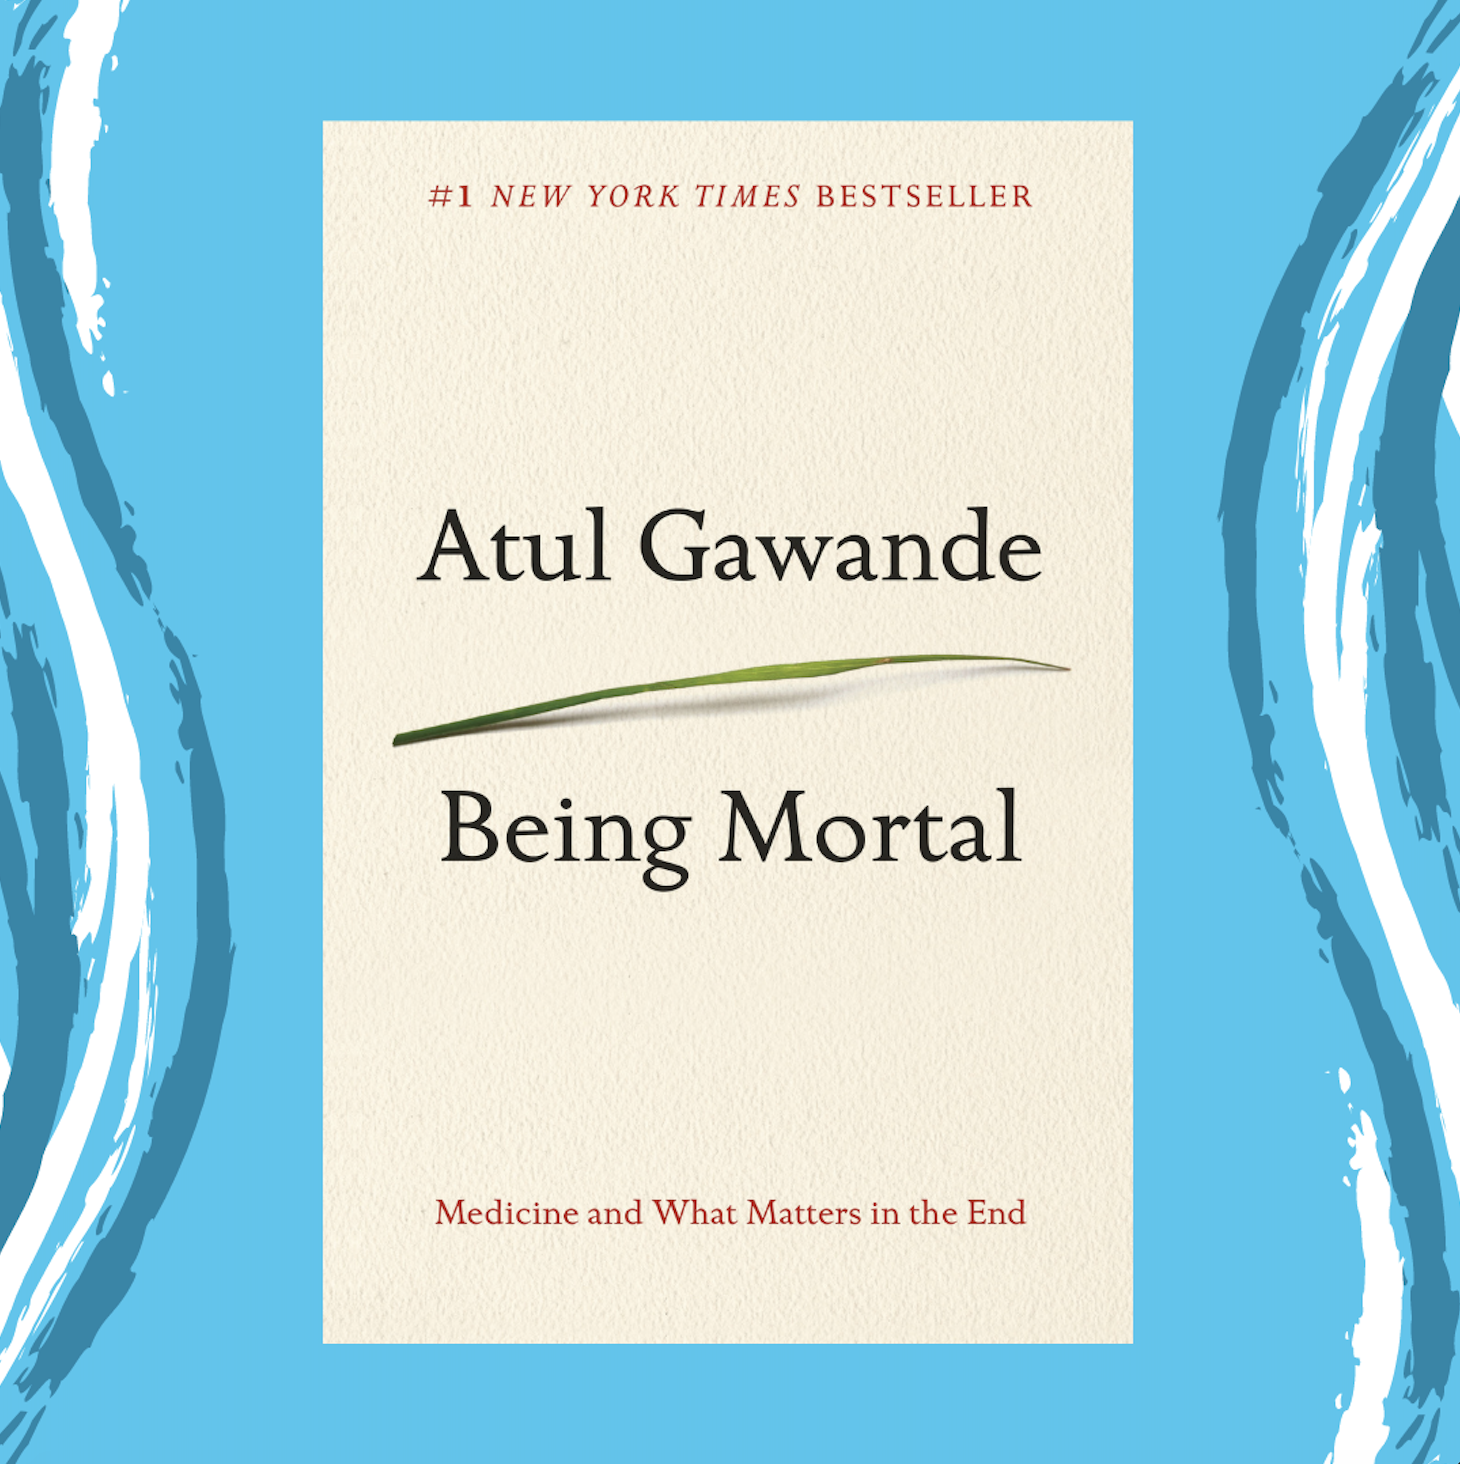 Online Program - Being Mortal: Medicine and What Matters in the End by Atul Gawande Event Image